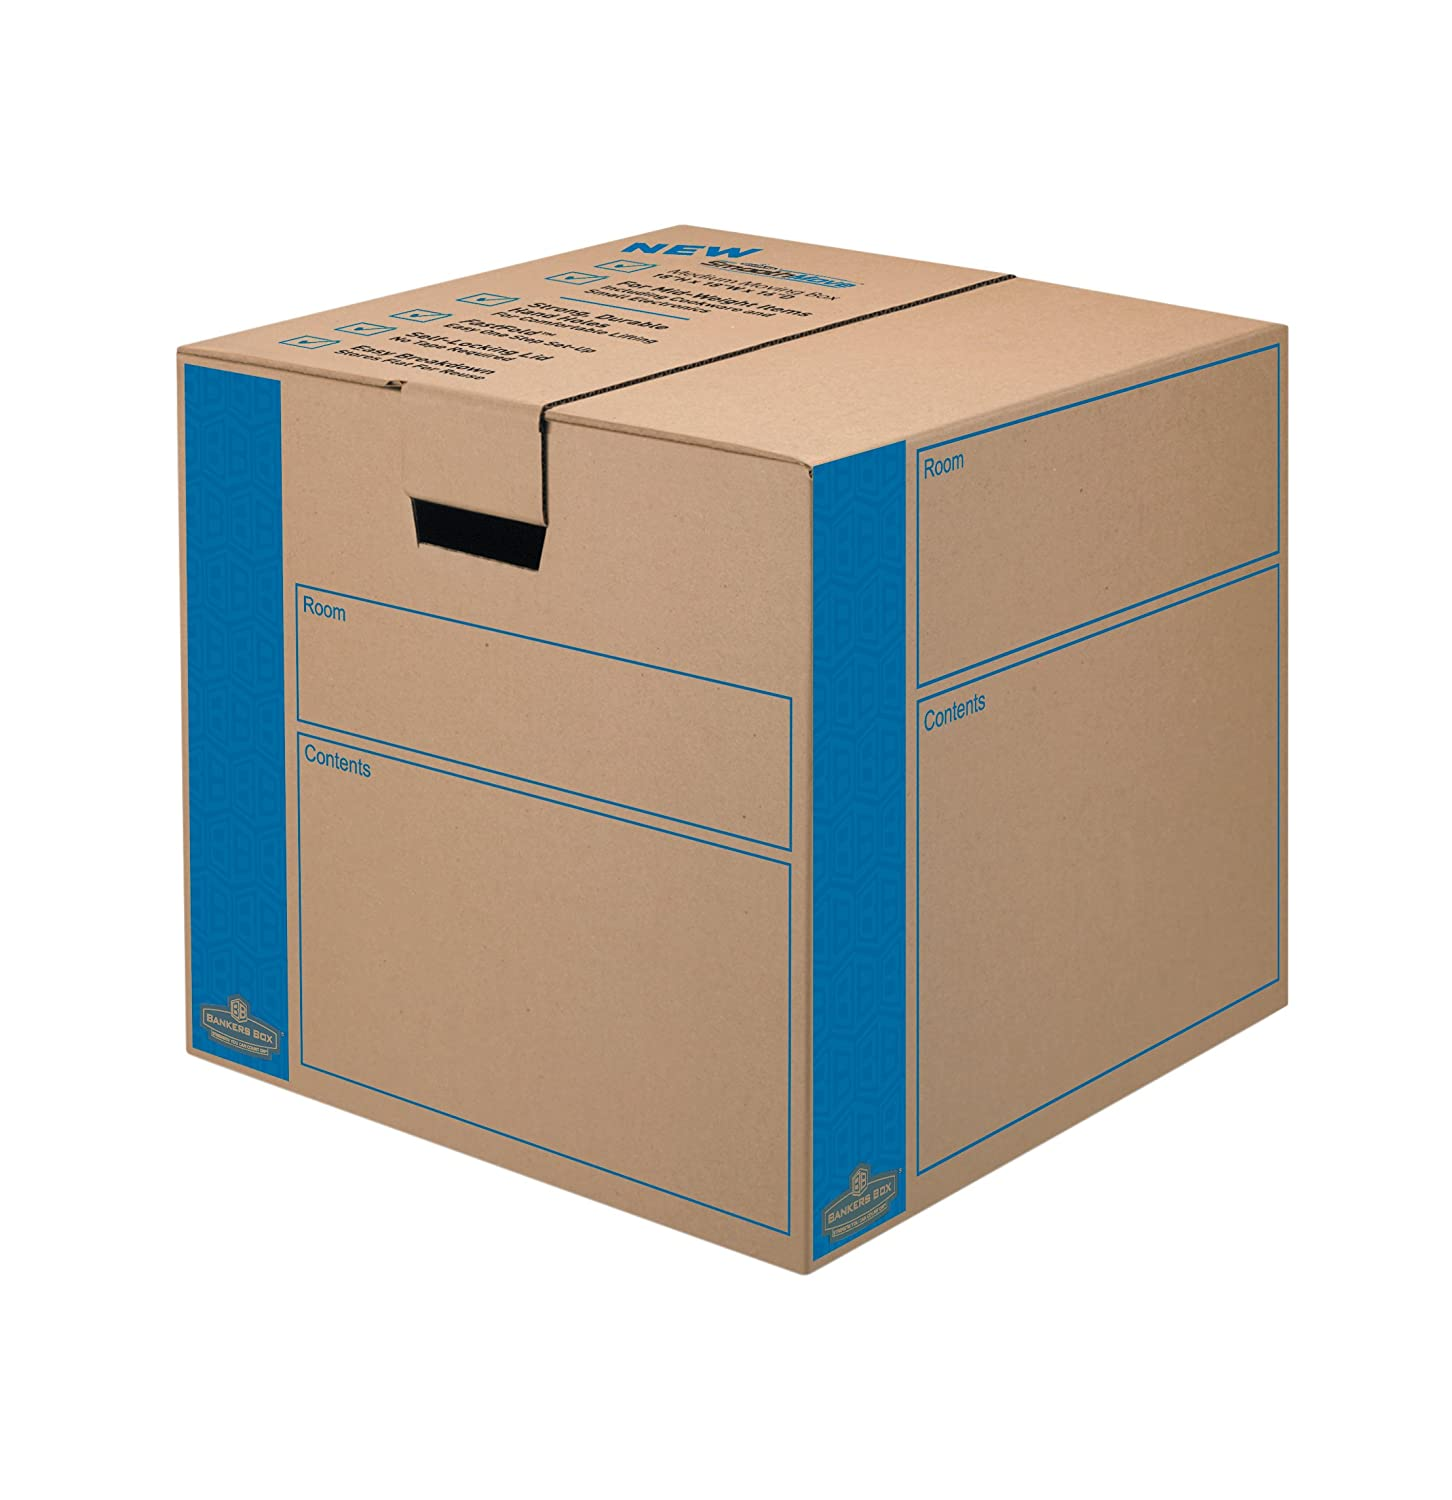 Bankers Box SmoothMove Moving and Storage Boxes, Small, 10 Pack: